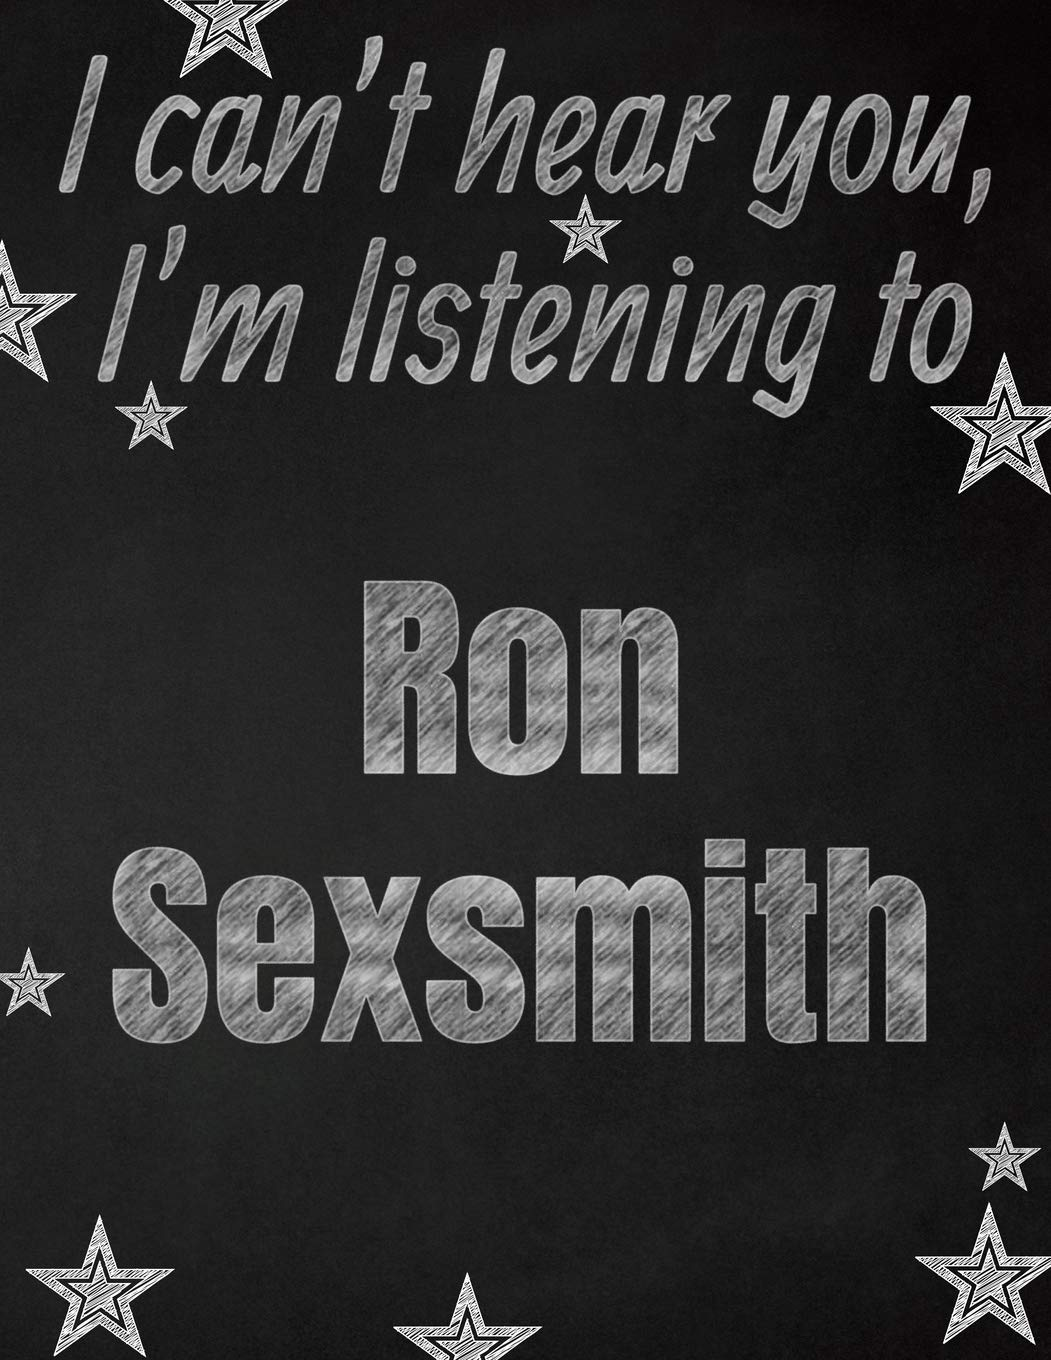 I cant hear you, Im listening to Ron Sexsmith creative ...